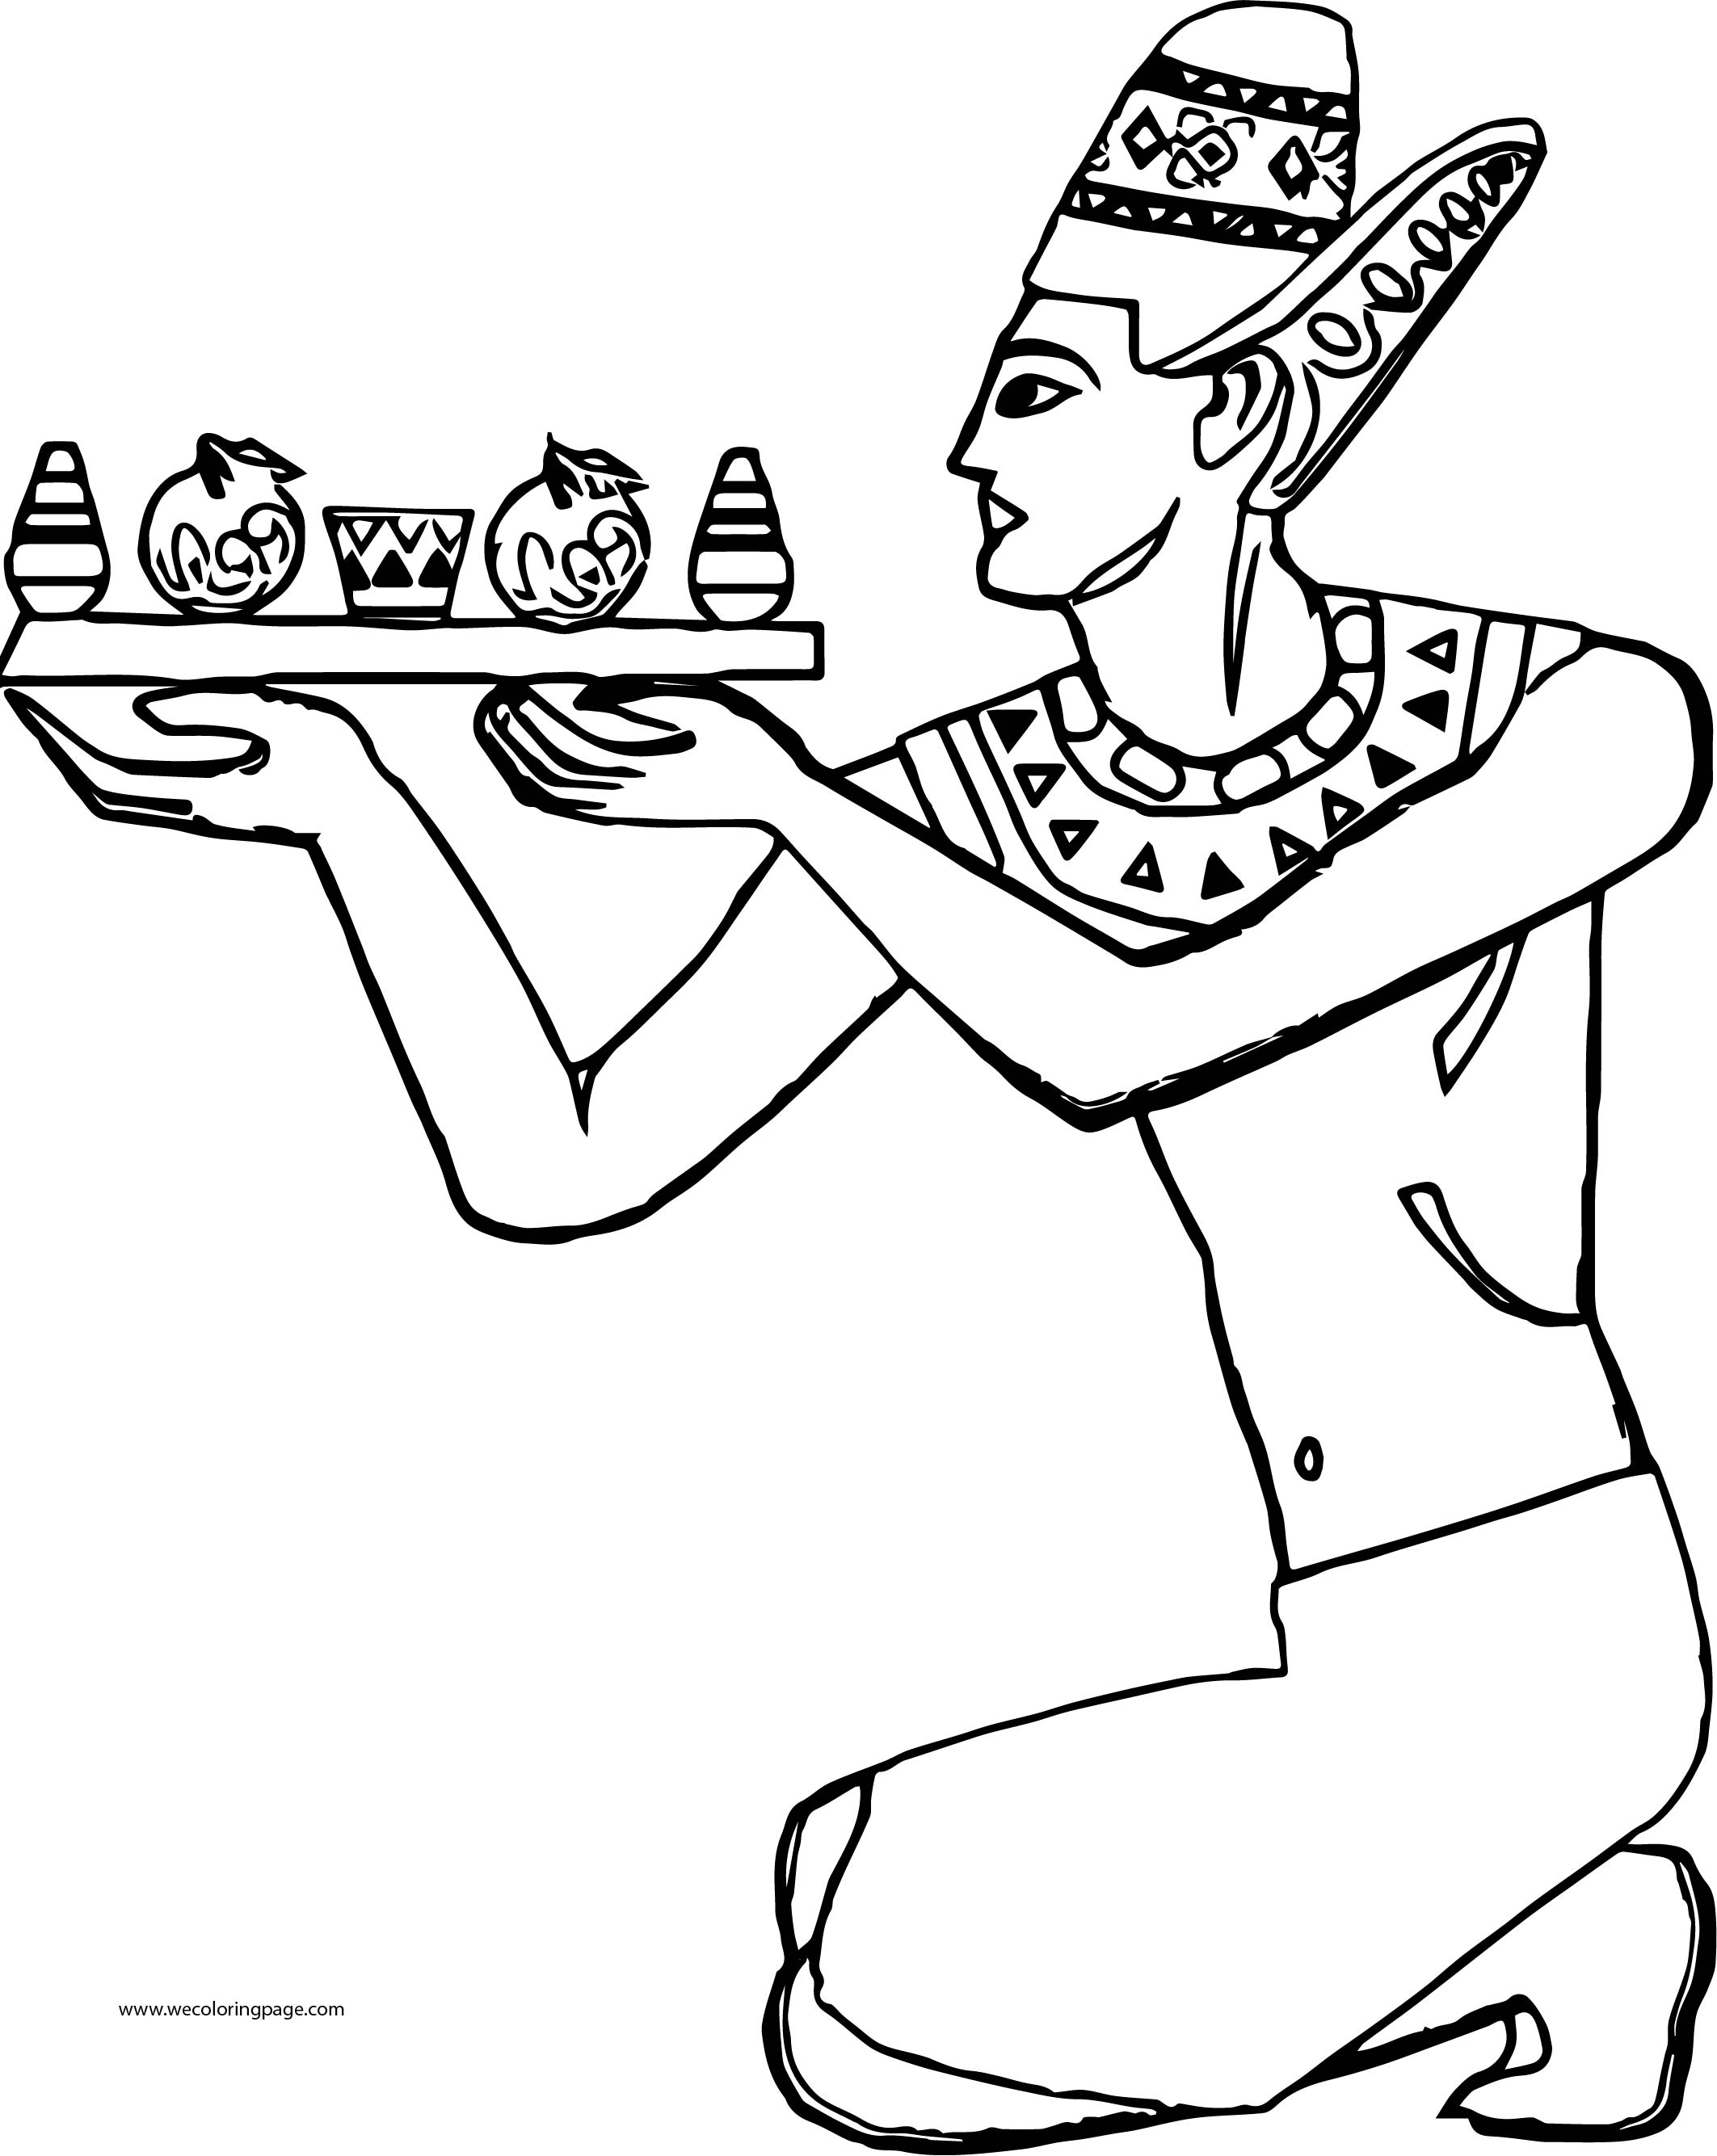 Your Plagues Of Egypt Coloring Page